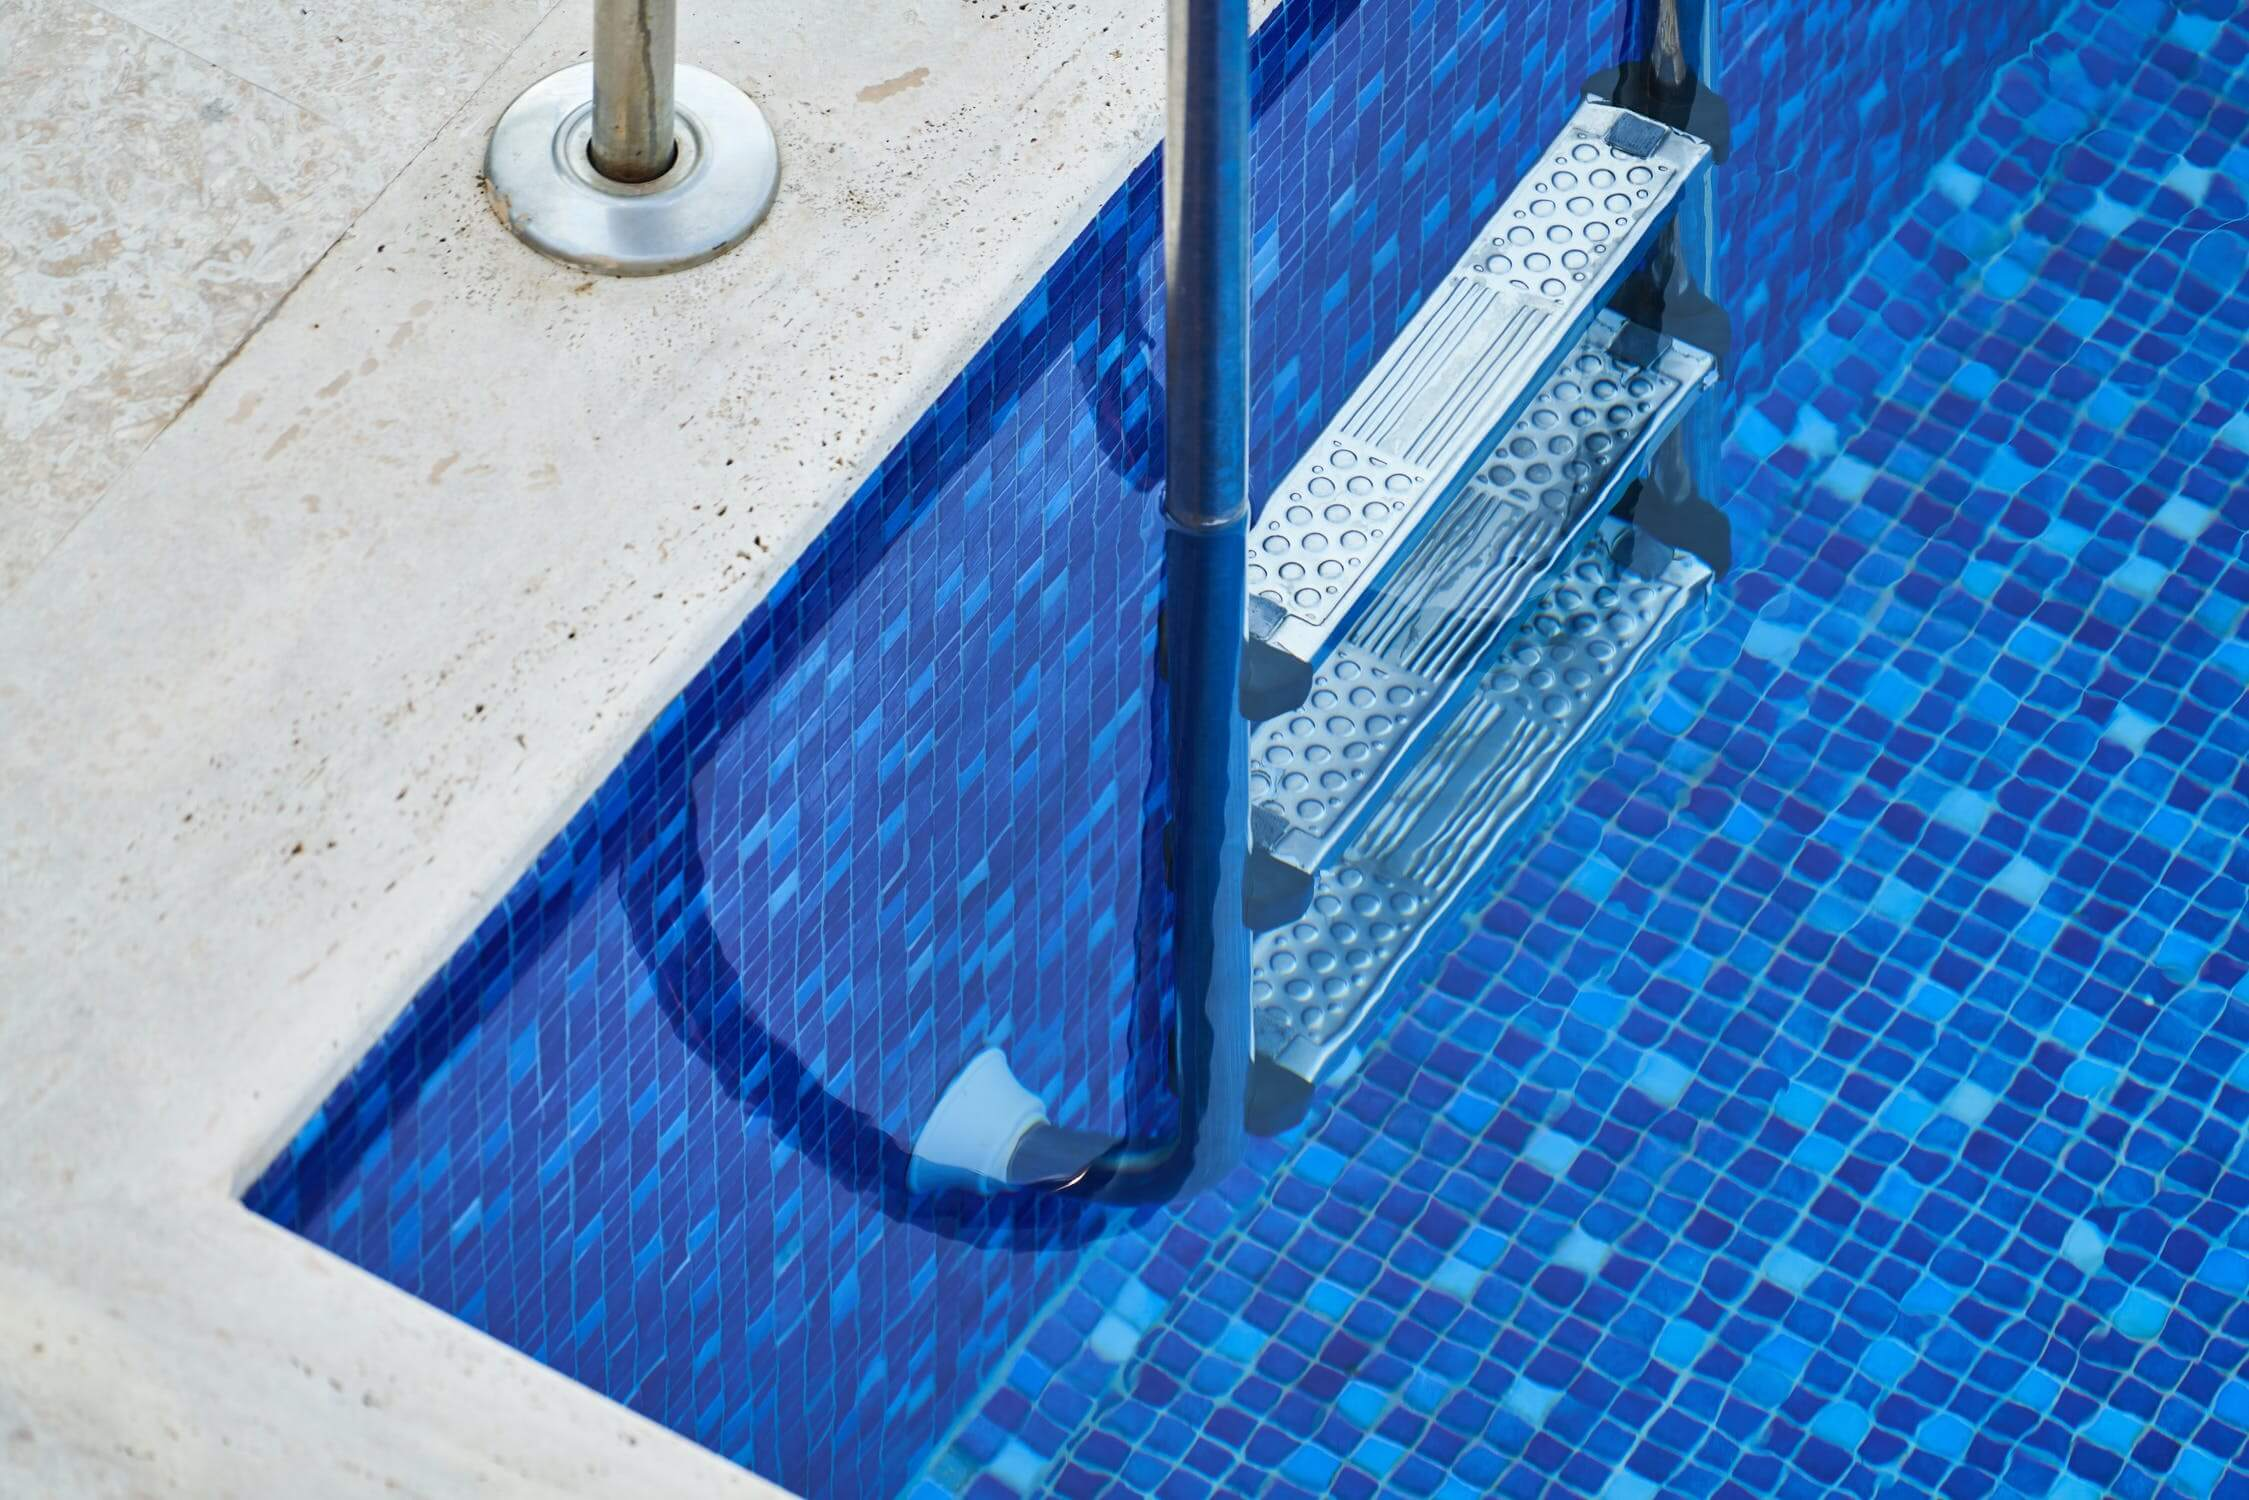 5 Best Aquabot Pool Cleaners in 2021